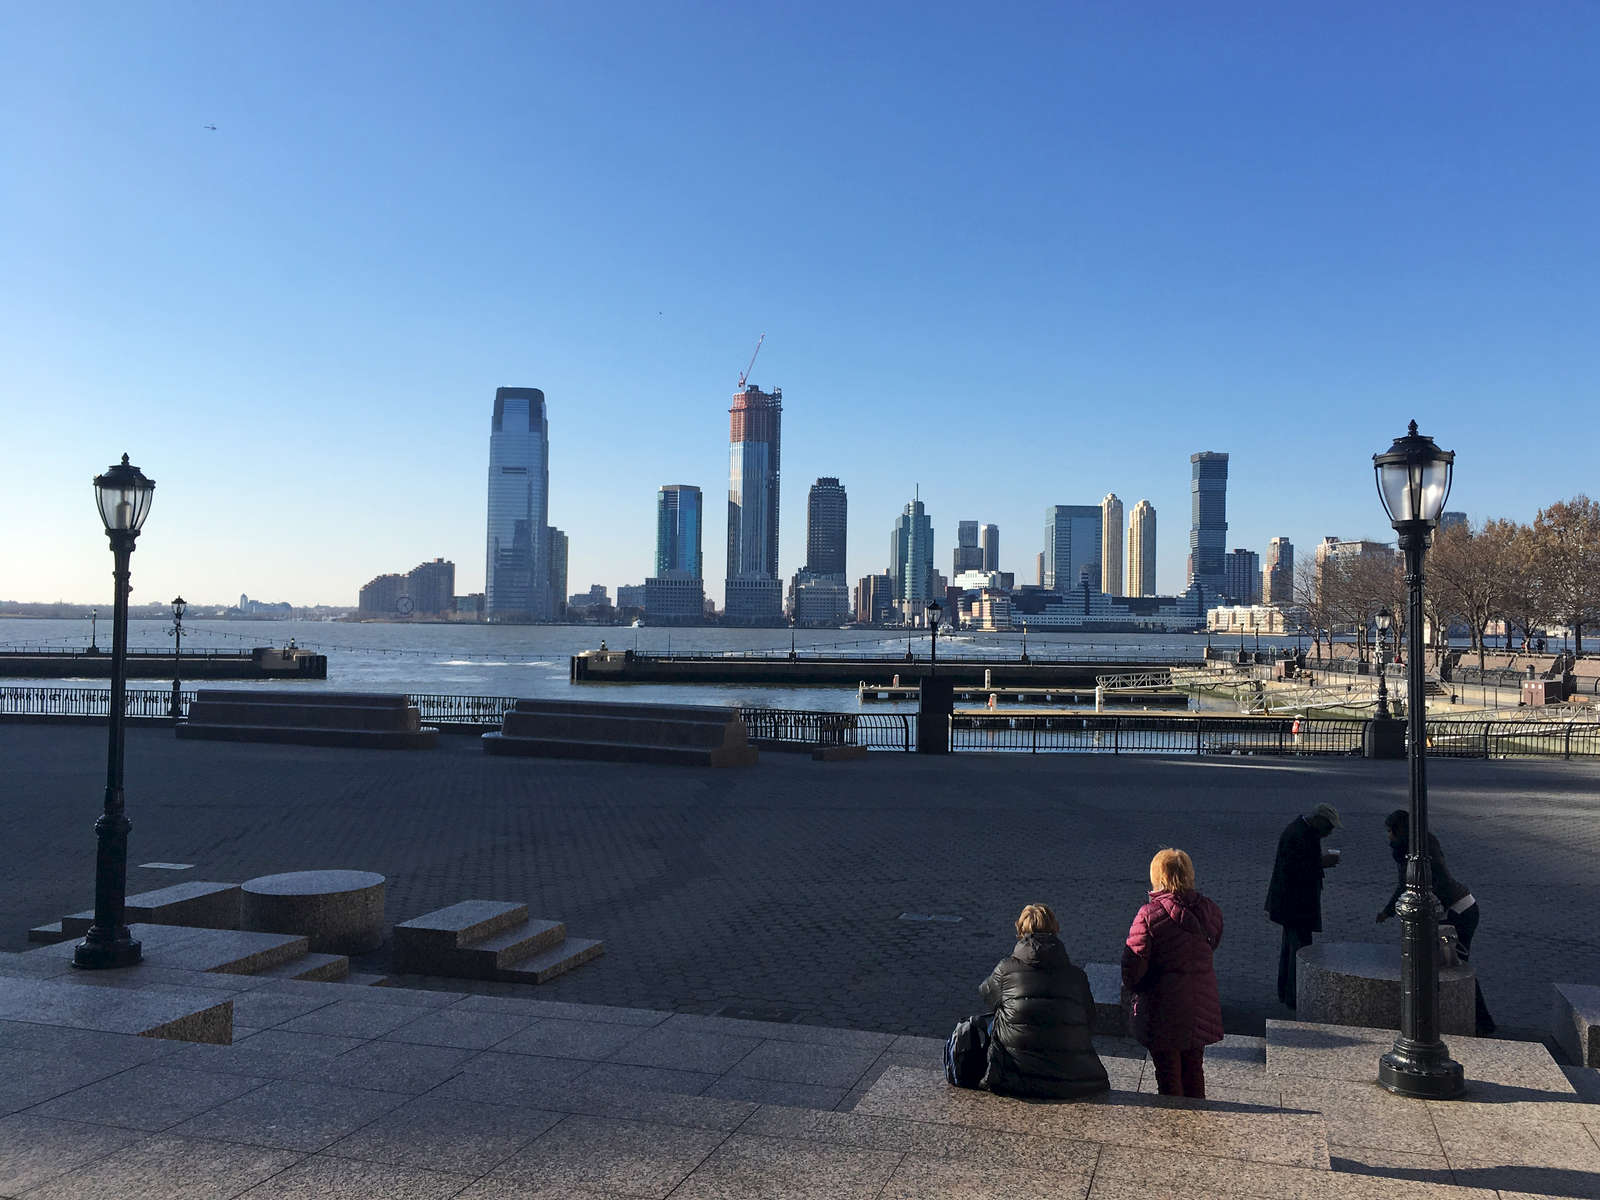 Looking across the Hudson River toward the New Jersey skyline. Jon Chase photo